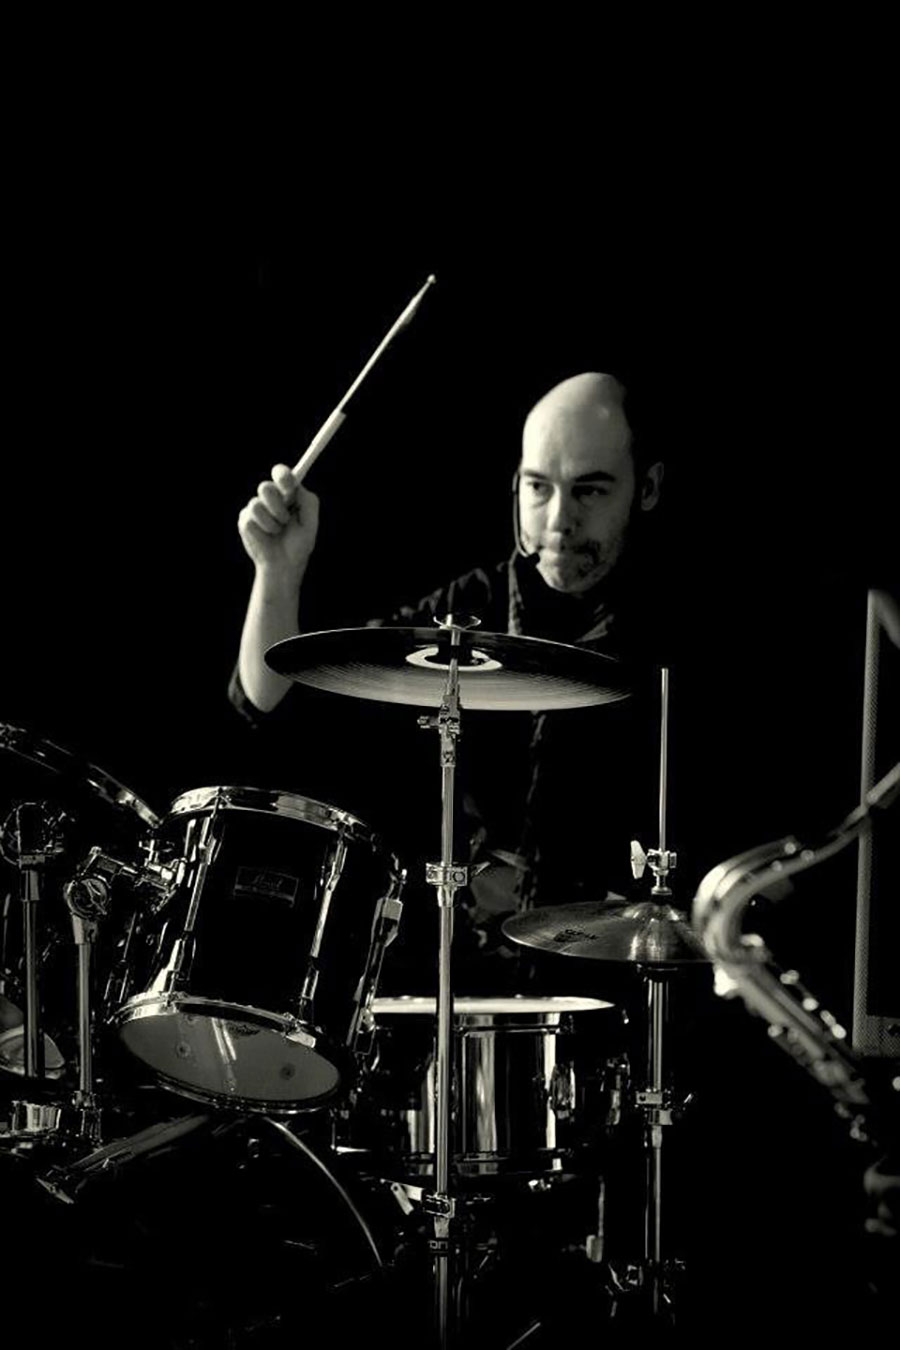 Drummer Onno Roell. Stijlvolle lounge muziek? Madame Jeanette & the Peppers, jazz, lounge, easy listening en close harmony.